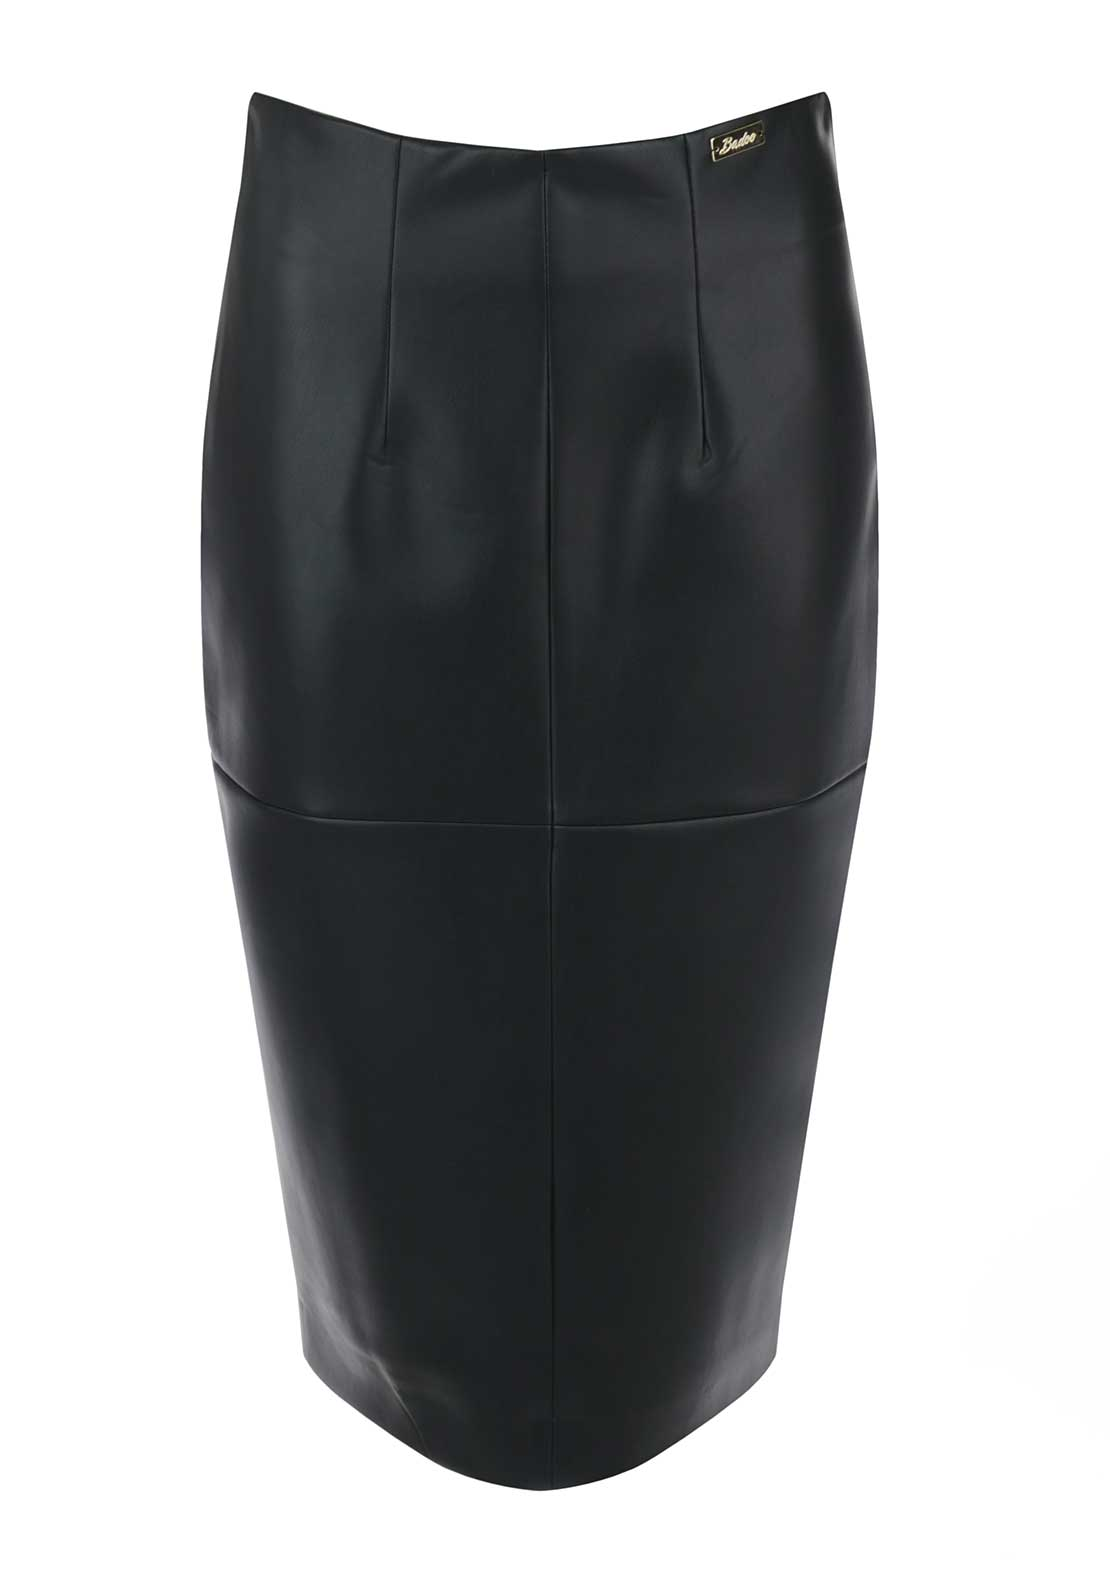 Badoo Faux Leather Pencil Skirt, Black